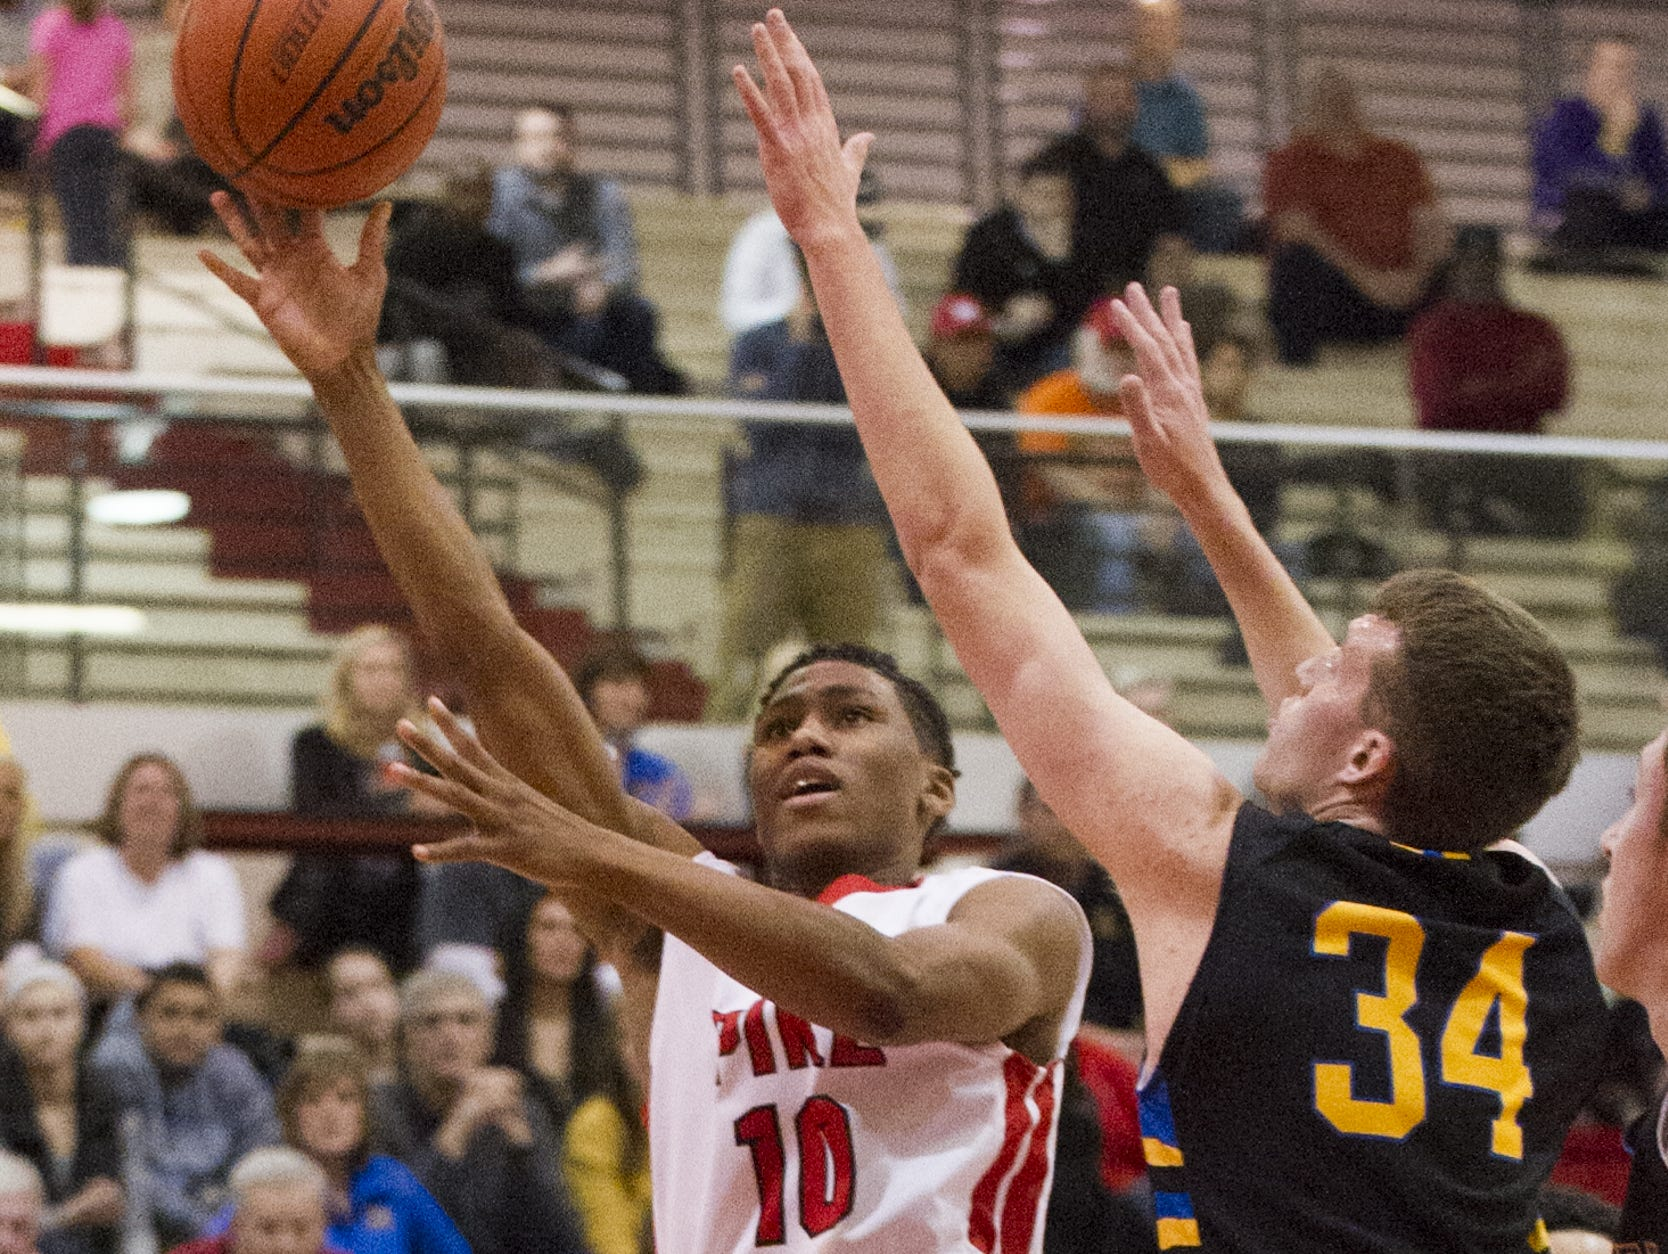 Pike High School sophomore Justin Roberts (10) puts up a shot around the defense of Carmel High School senior Keegan Culp (34) during the first half action. Pike High School hosted Carmel High School in MIC Conference boy's varsity basketball, Wednesday, Jan. 21, 2015.